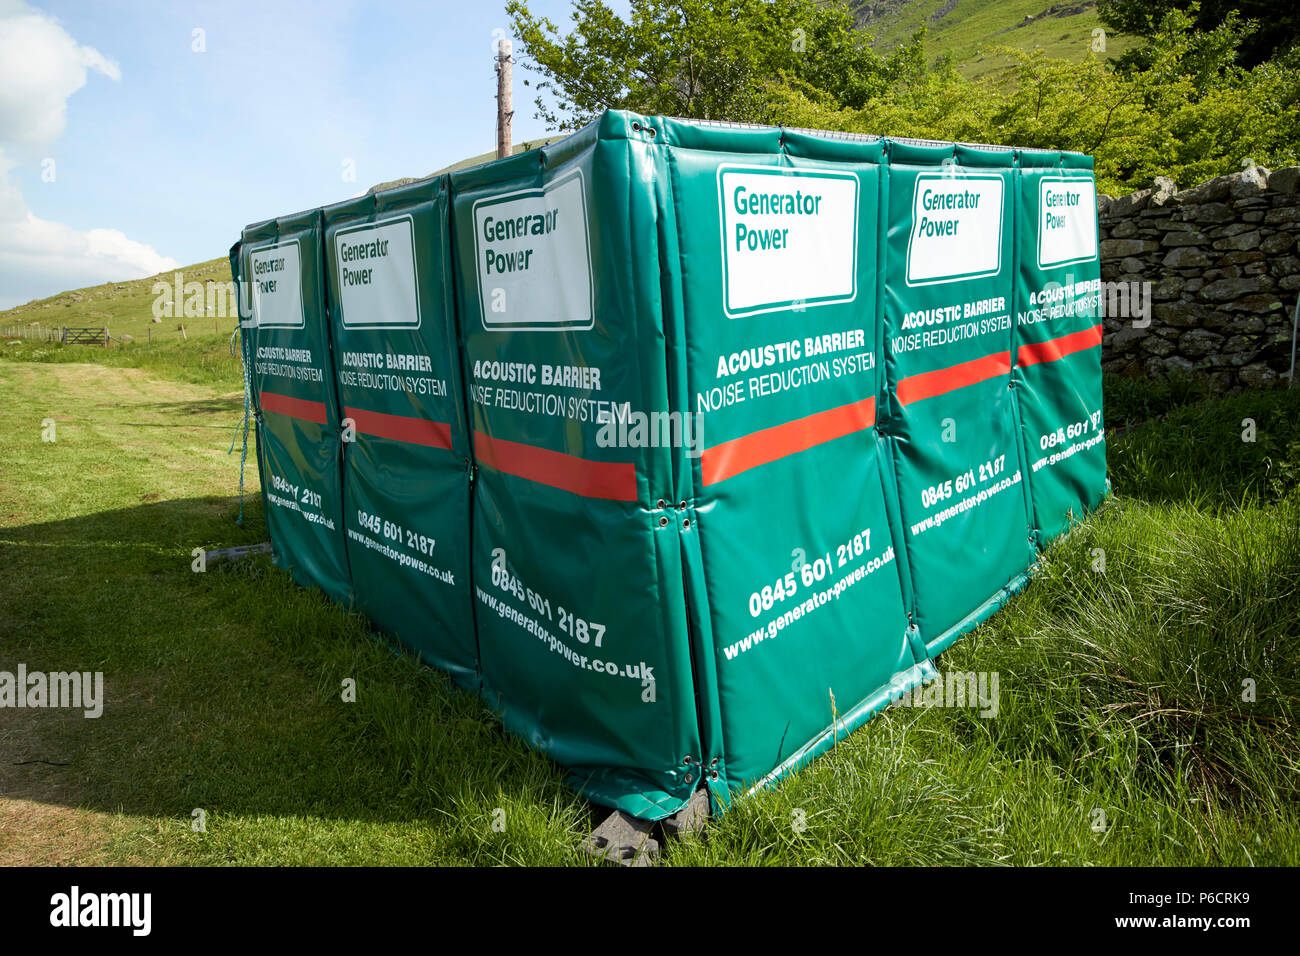 acoustic barrier noise reduction system around a temporary electricity generator in the lake district cumbria england uk - Stock Image